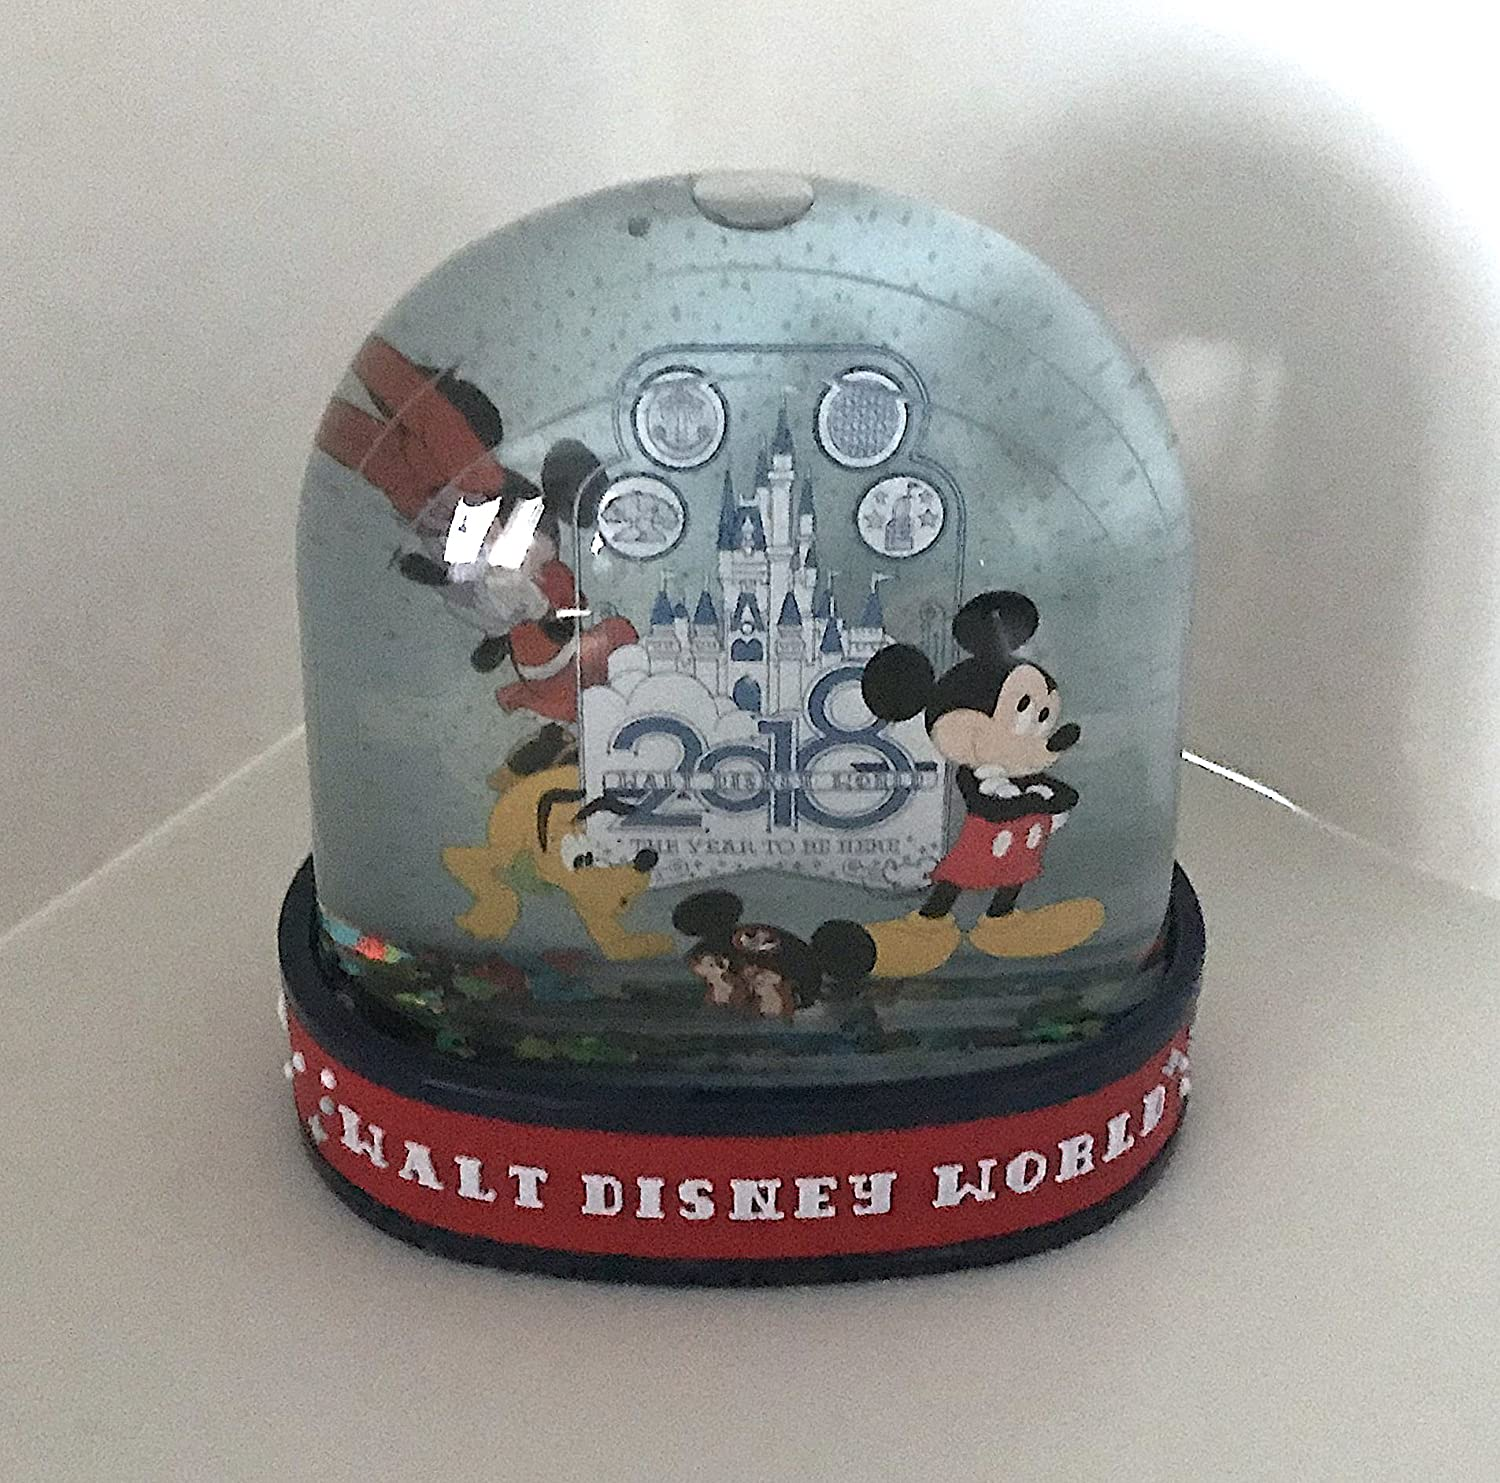 Walt Disney World 2018 Mickey Minnie Mouse The Year to Be Here Plastic Snowglobe DisneyParks